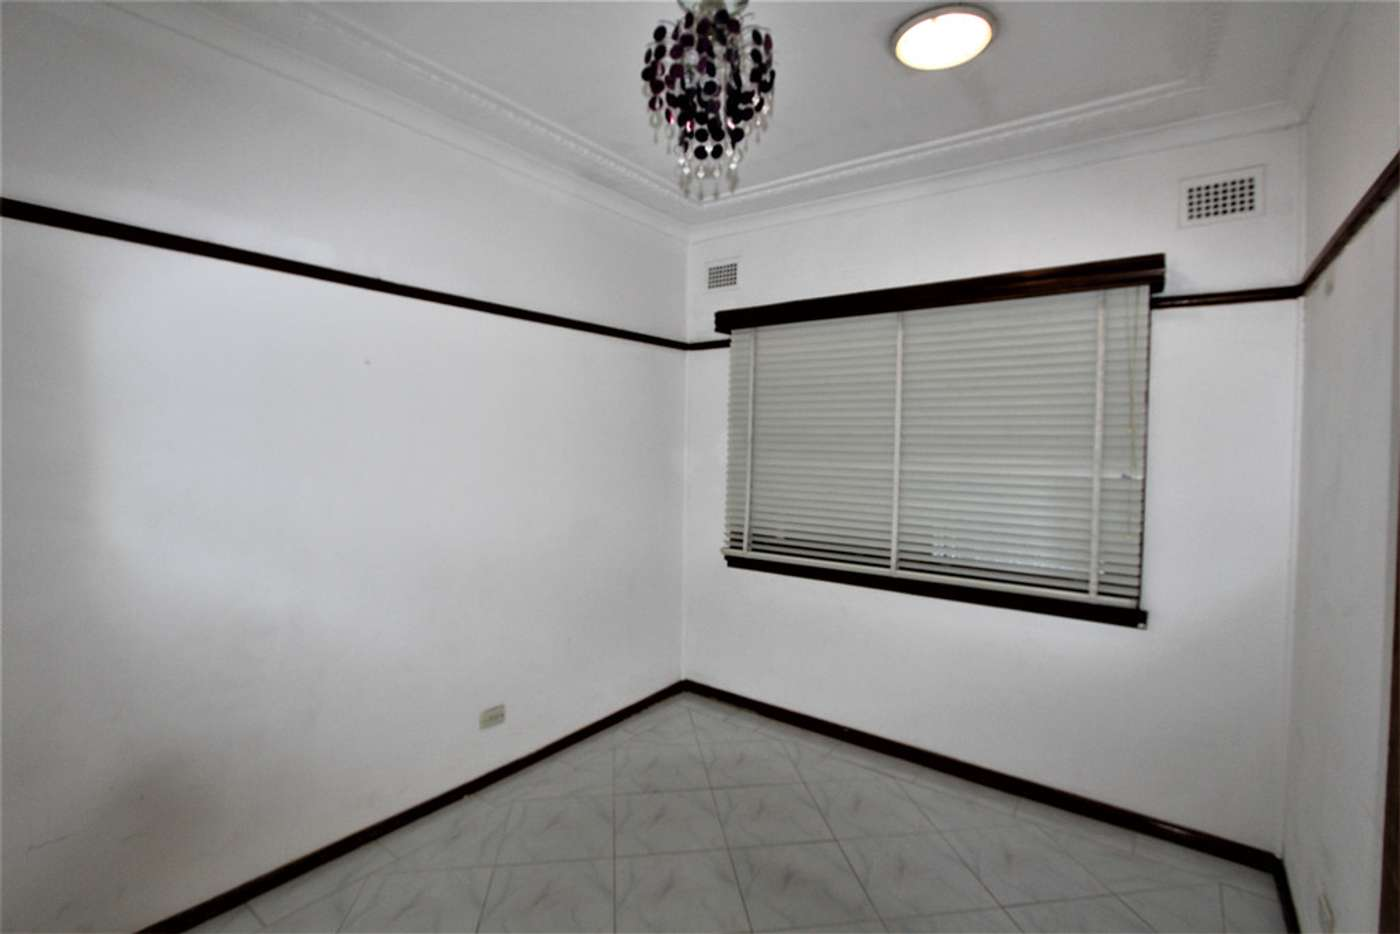 Seventh view of Homely house listing, 19 Winifred Street, Condell Park NSW 2200